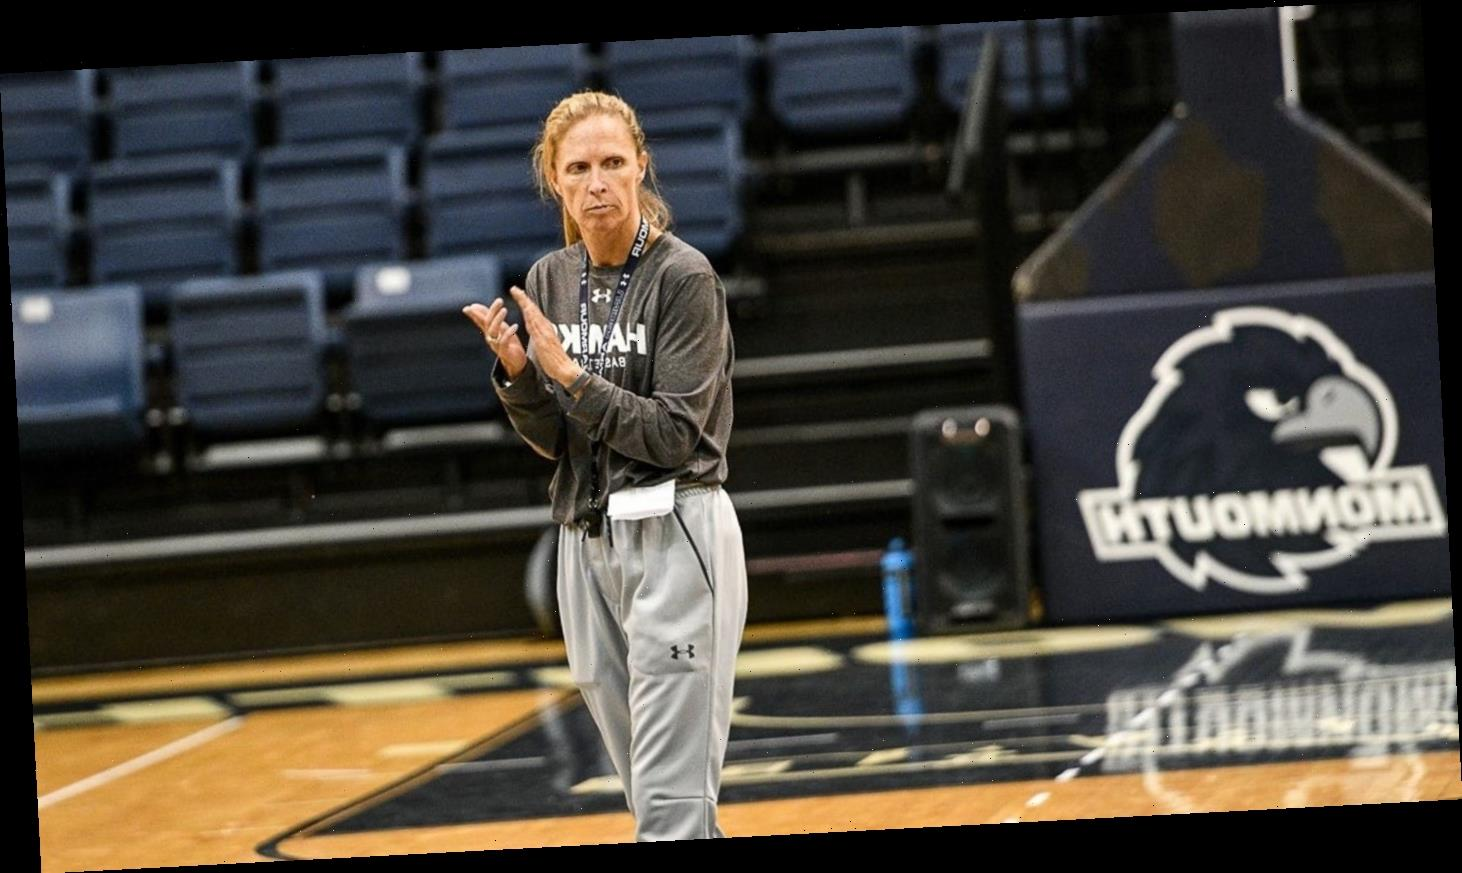 Monmouth women's basketball coach Jody Craig resigns, two days after suspension